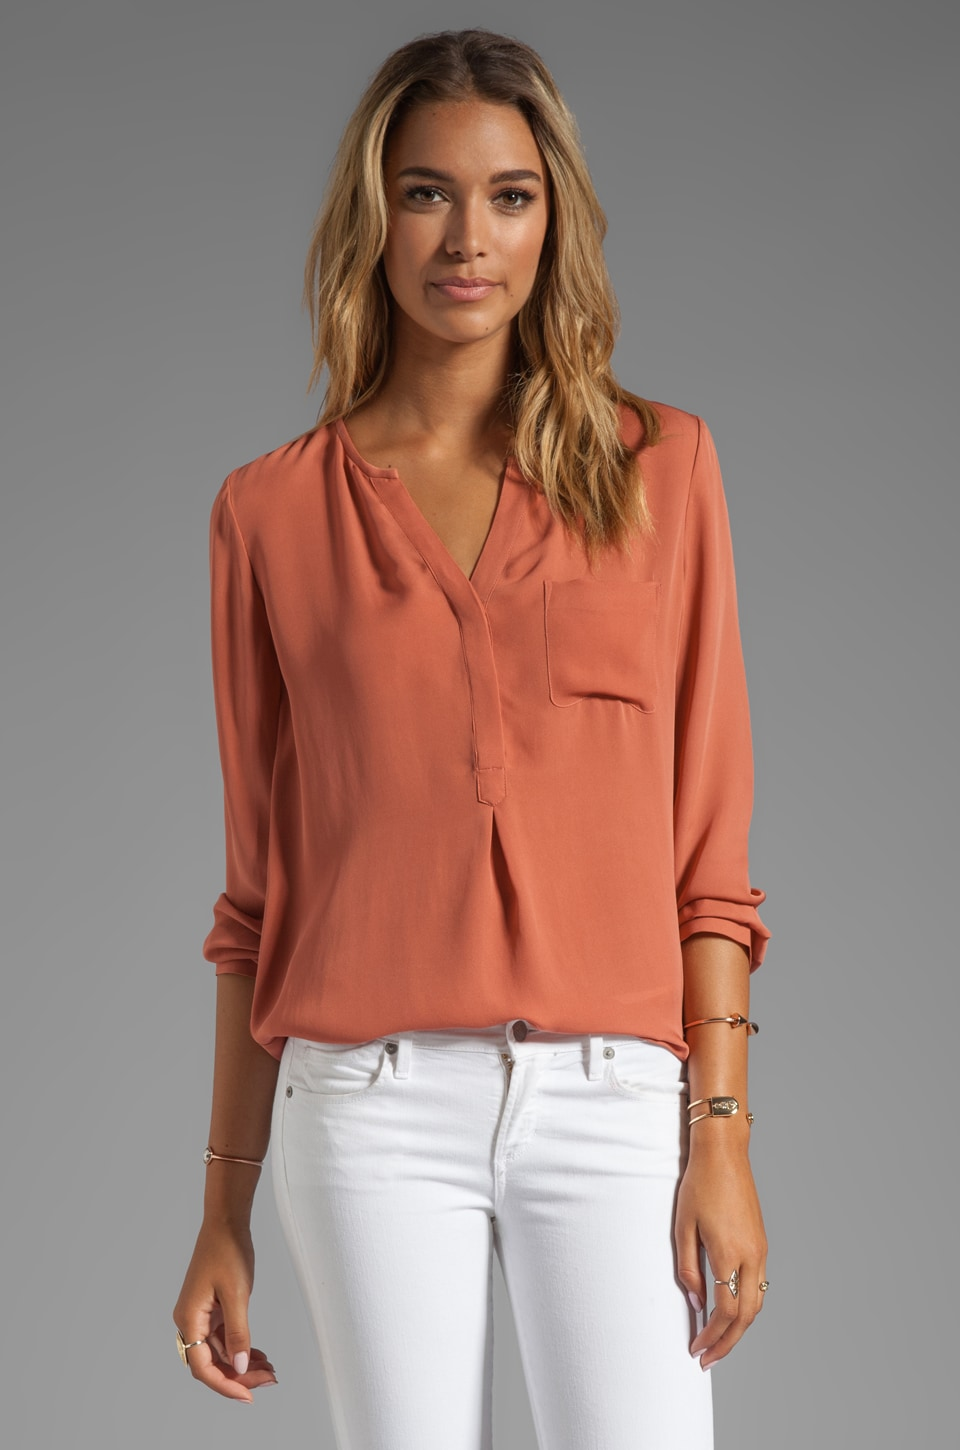 Joie Matte Silk Venicia D Blouse in Clay